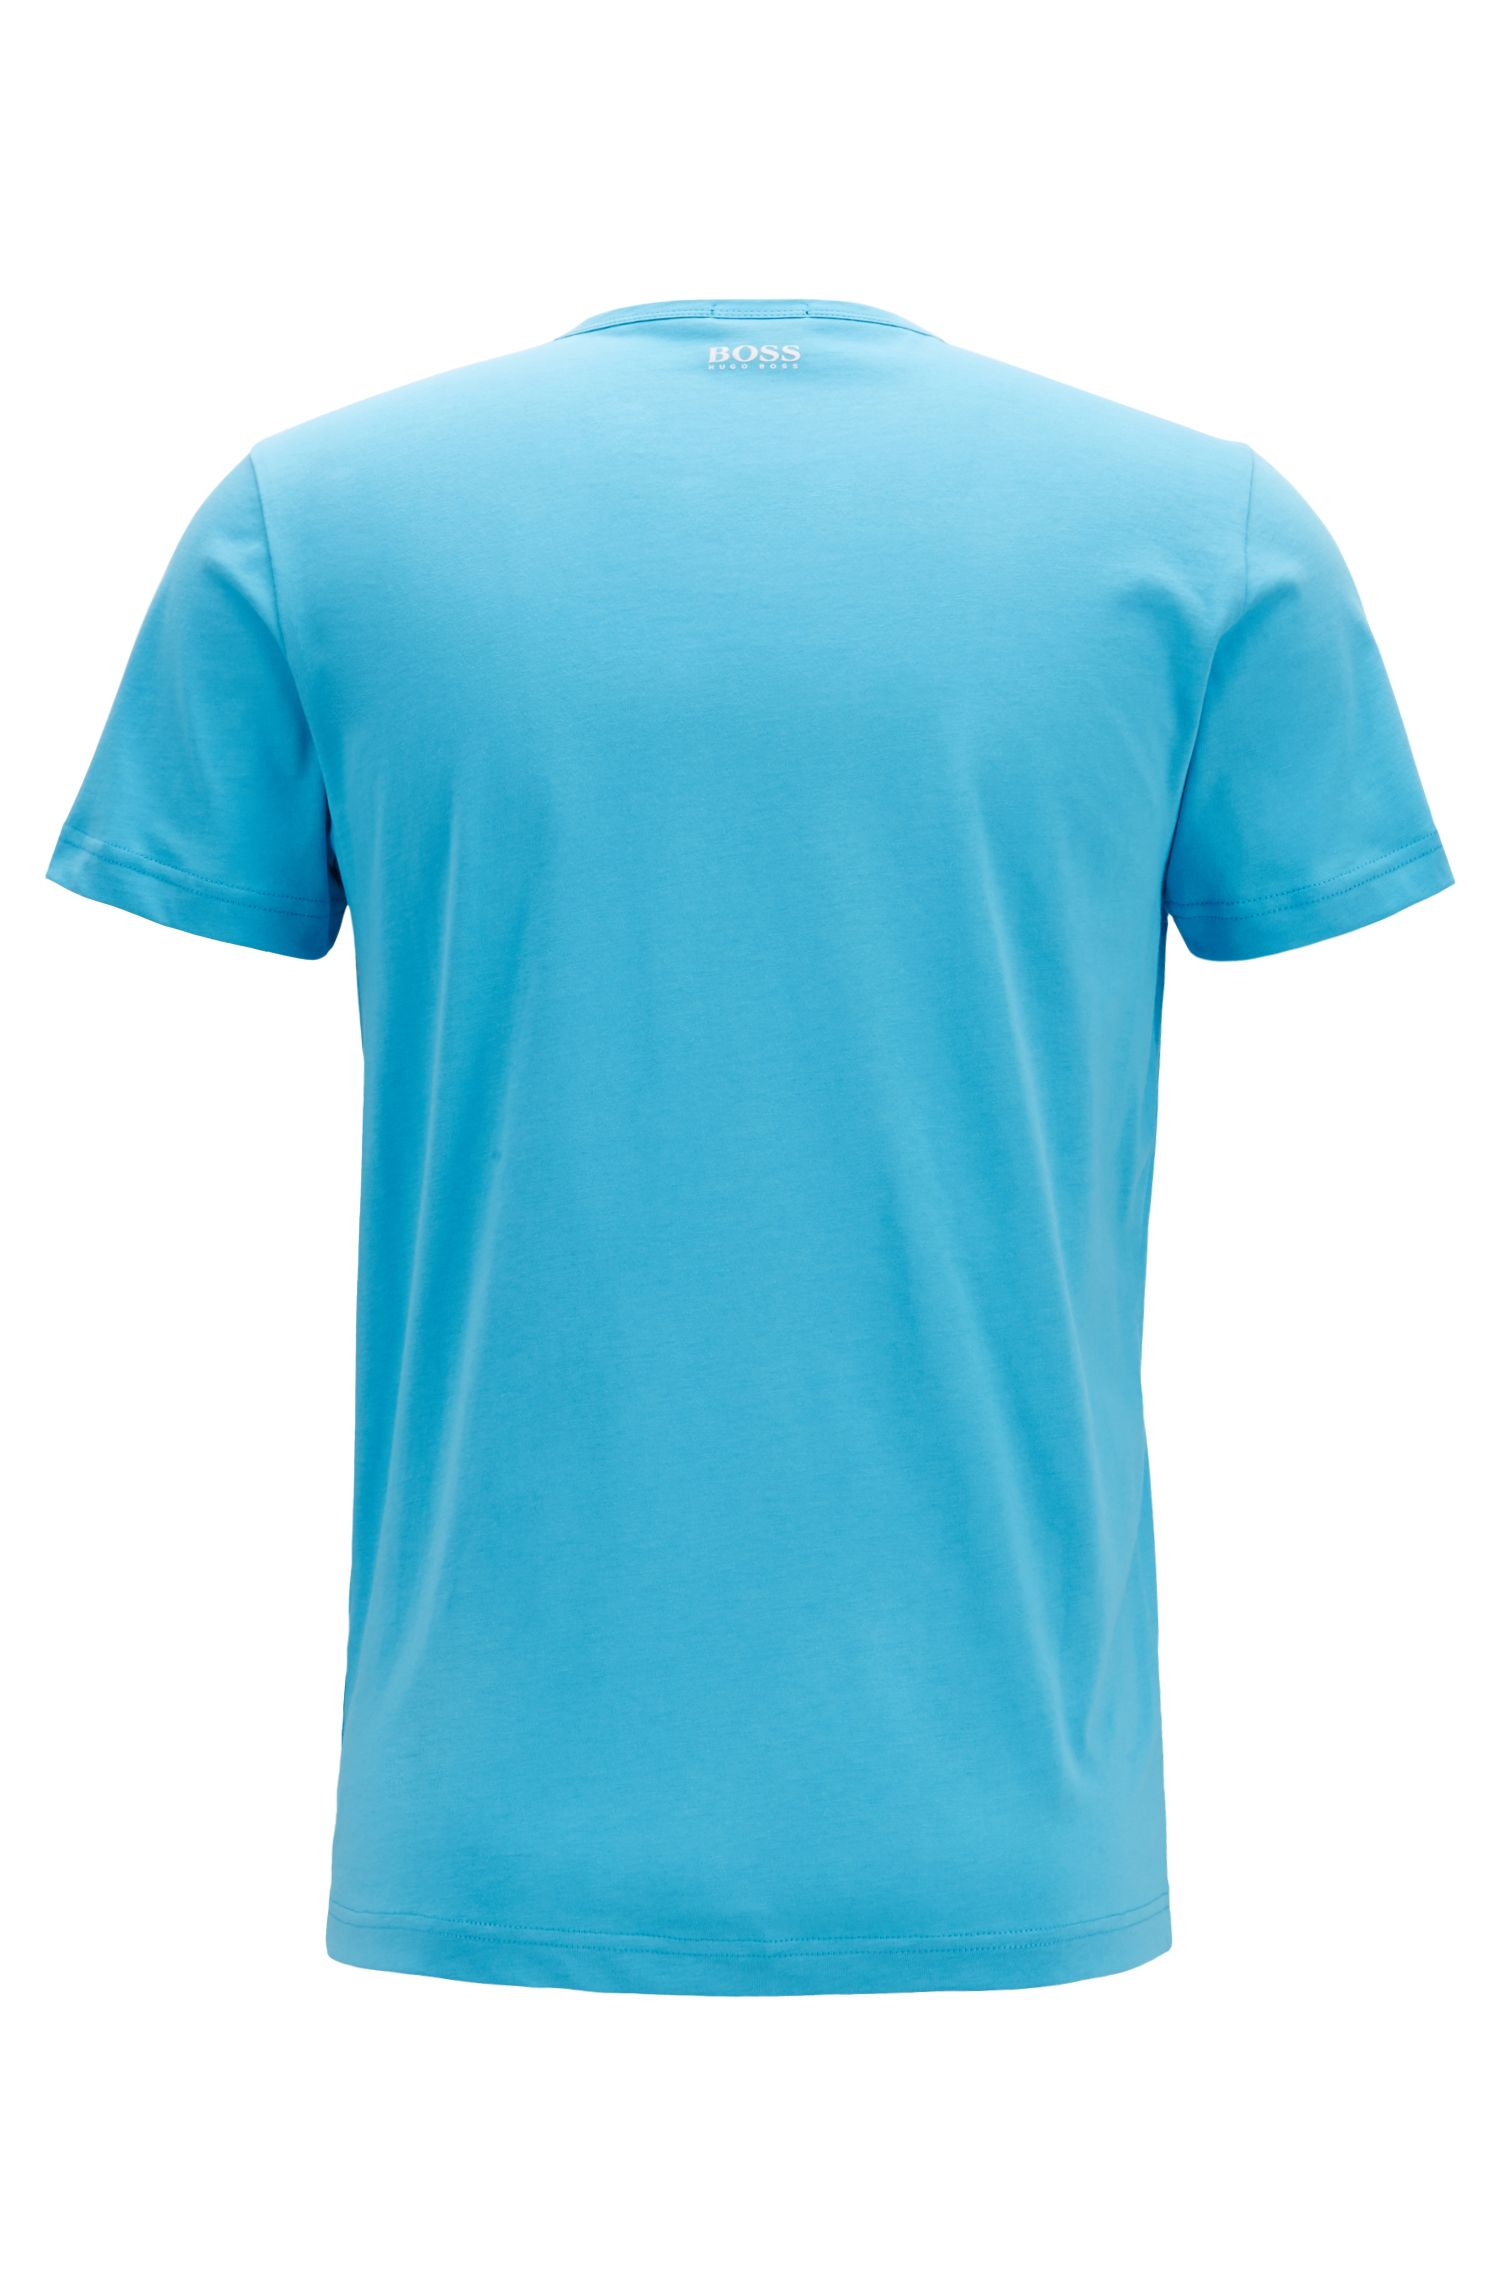 Crew-neck T-shirt with logo artwork, Turquoise